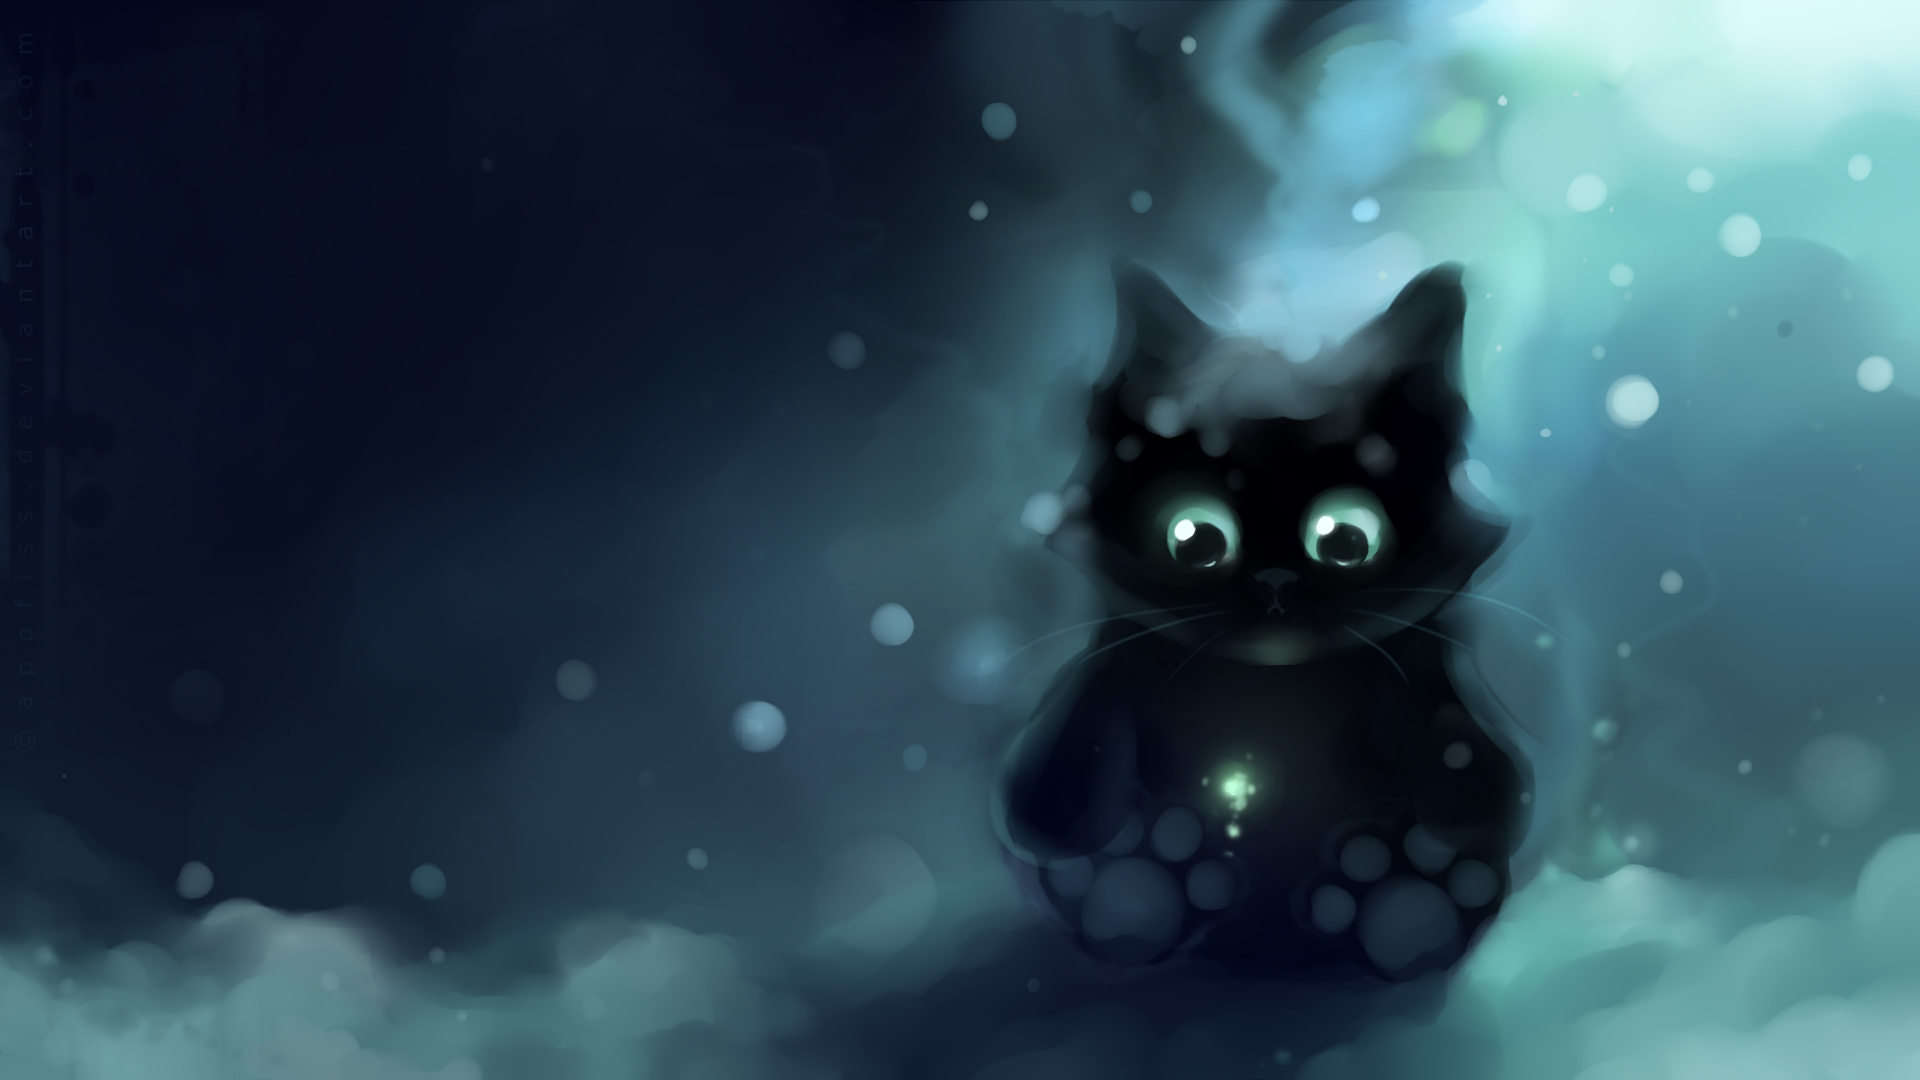 Apofiss animals images black kitty 2 hd wallpaper and - Anime cat wallpaper ...